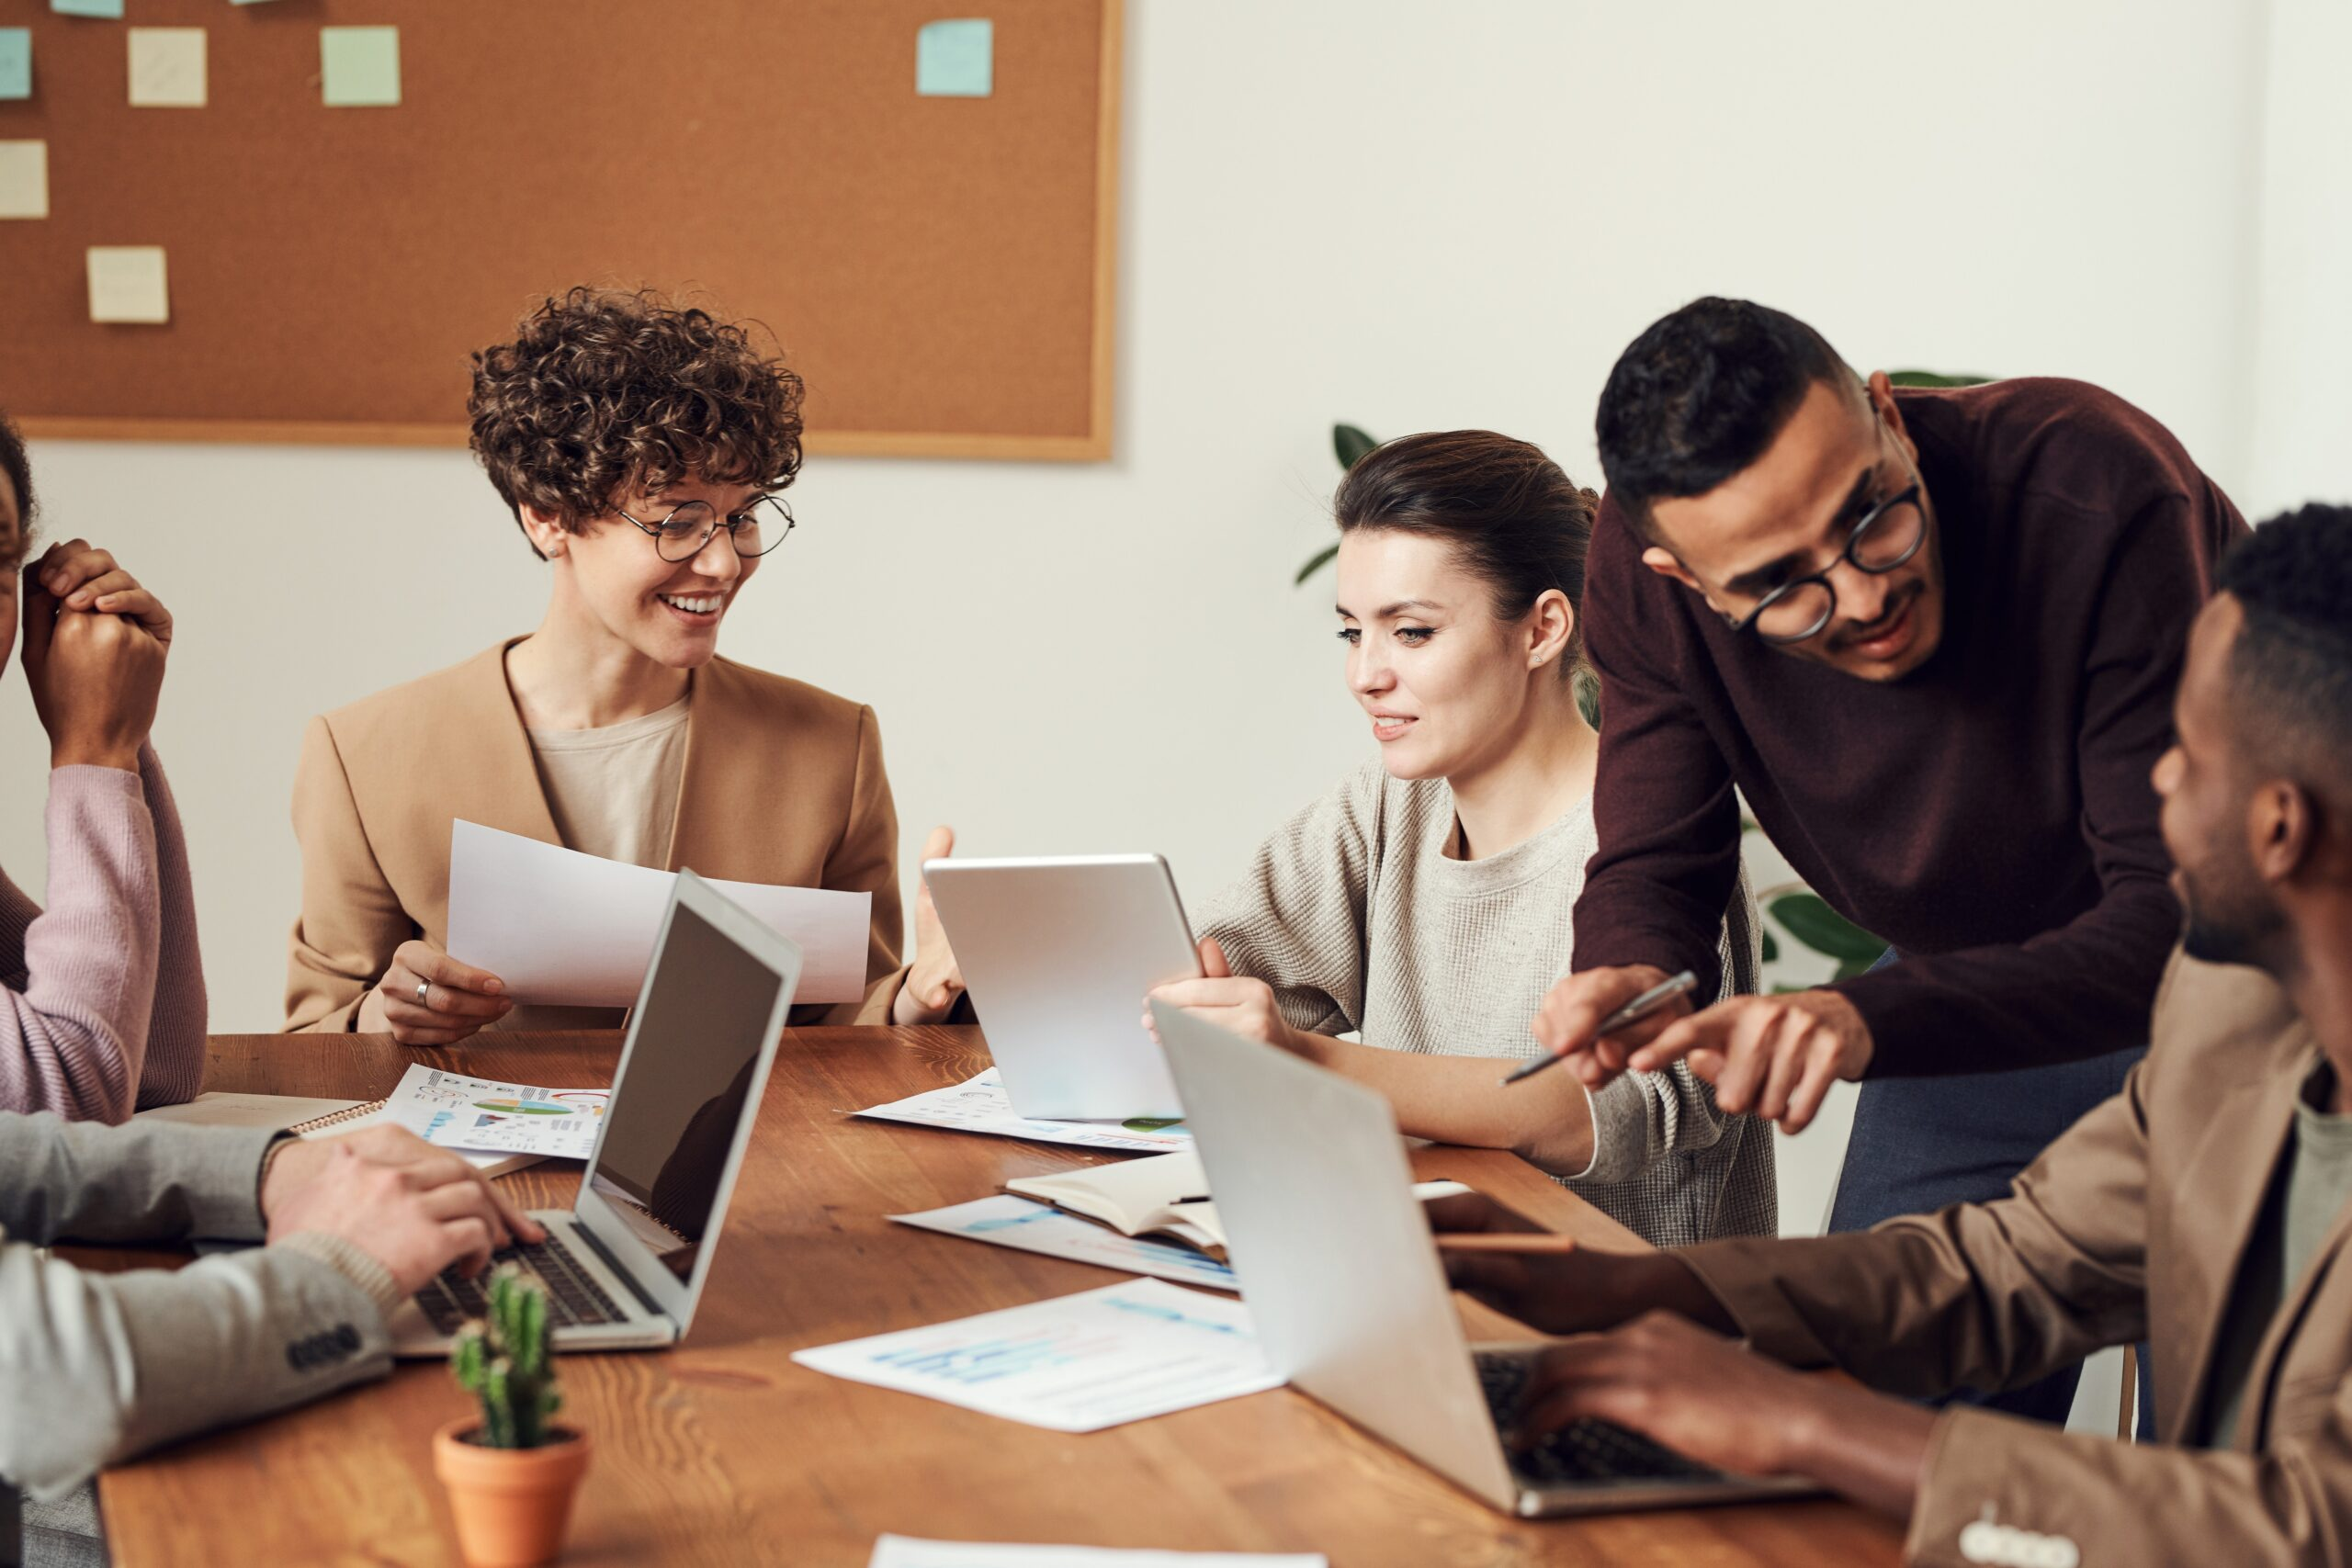 Involve your Team from the Start to Encourage Inter-Organizational Buy-in